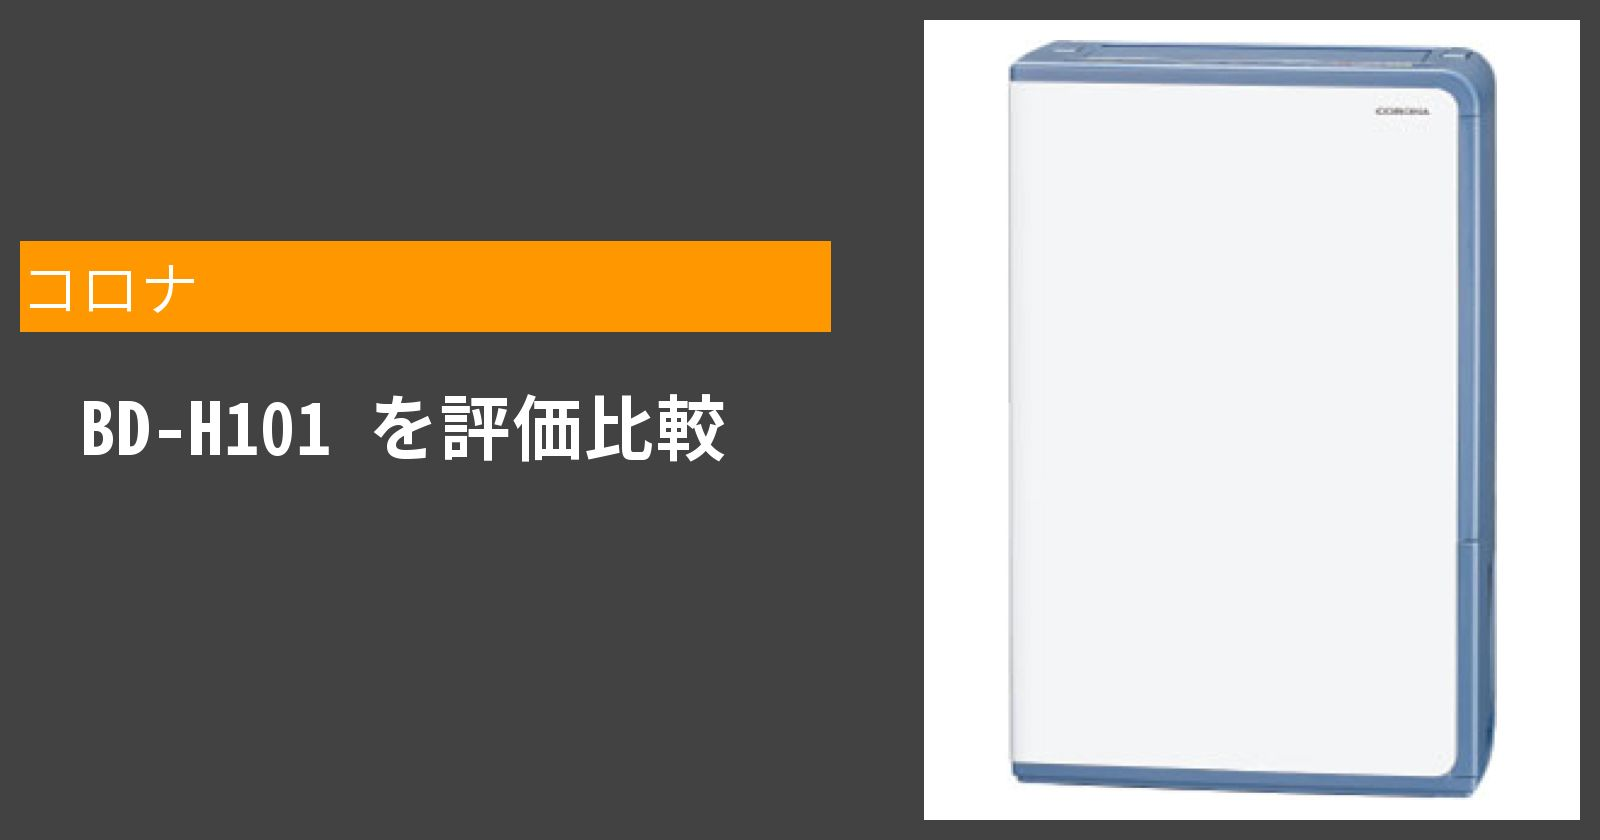 BD-H101を徹底評価